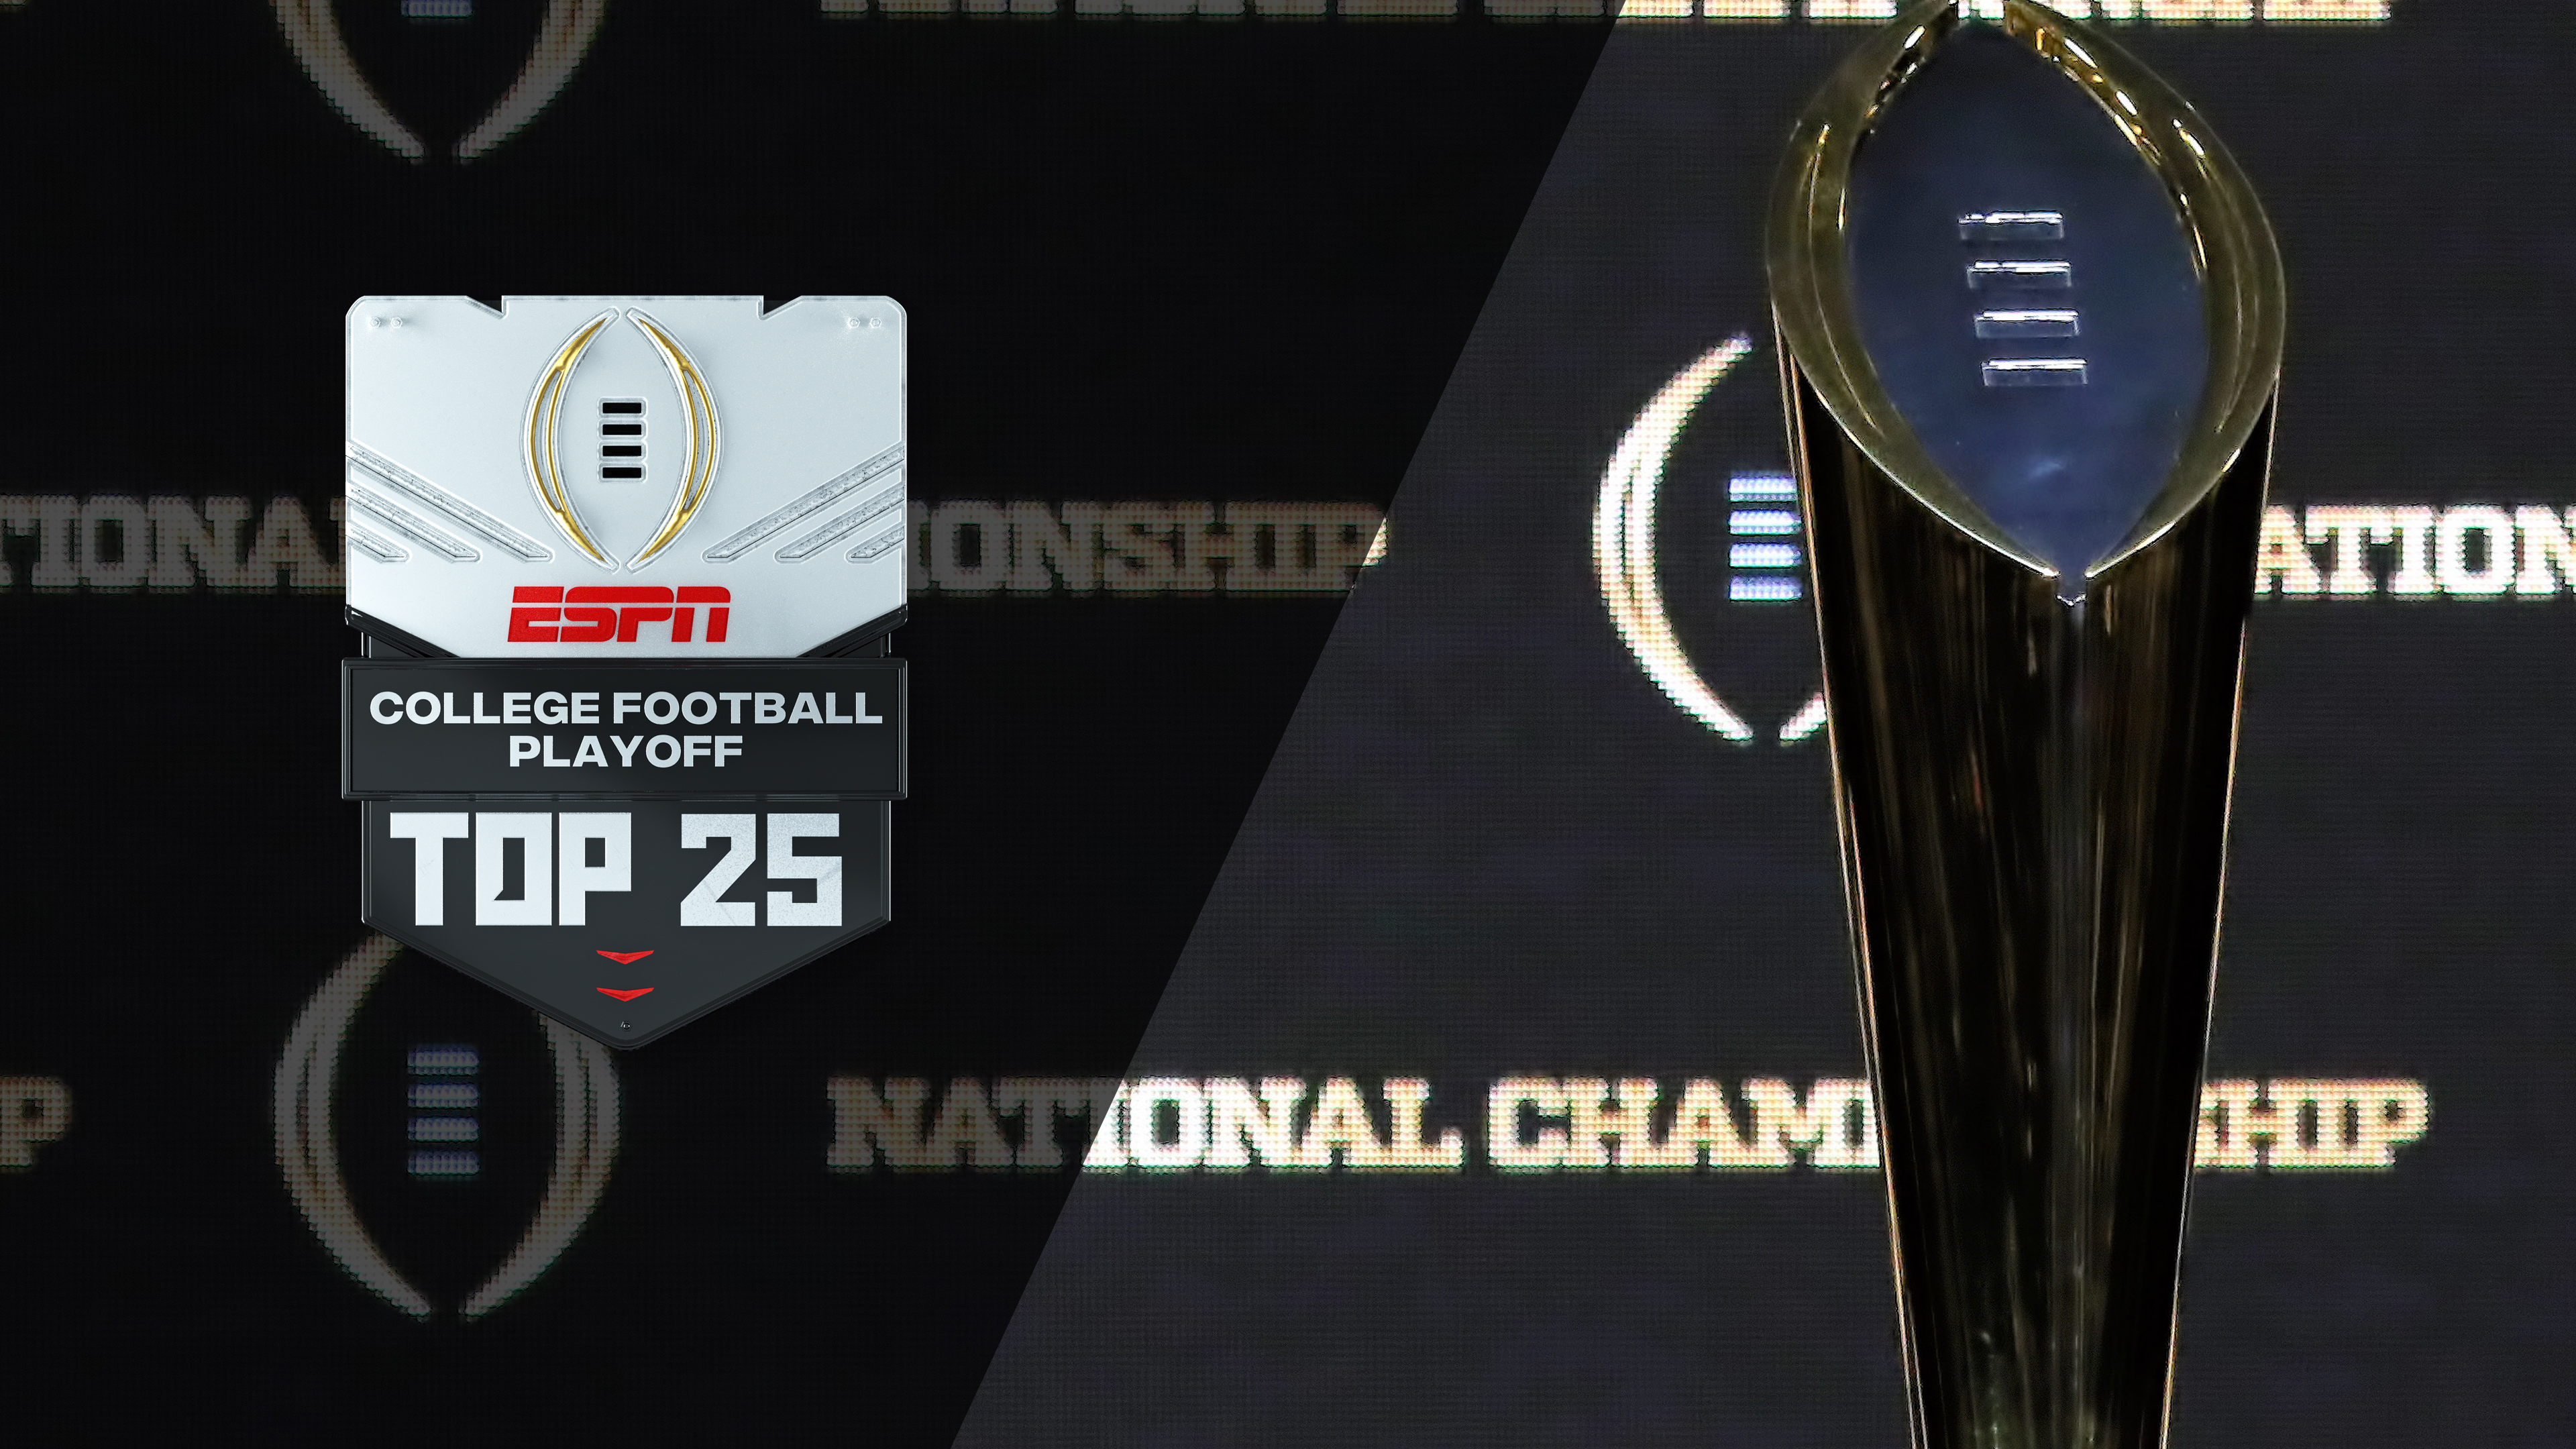 College Football Playoff: Top 25 Presented by Northwestern Mutual